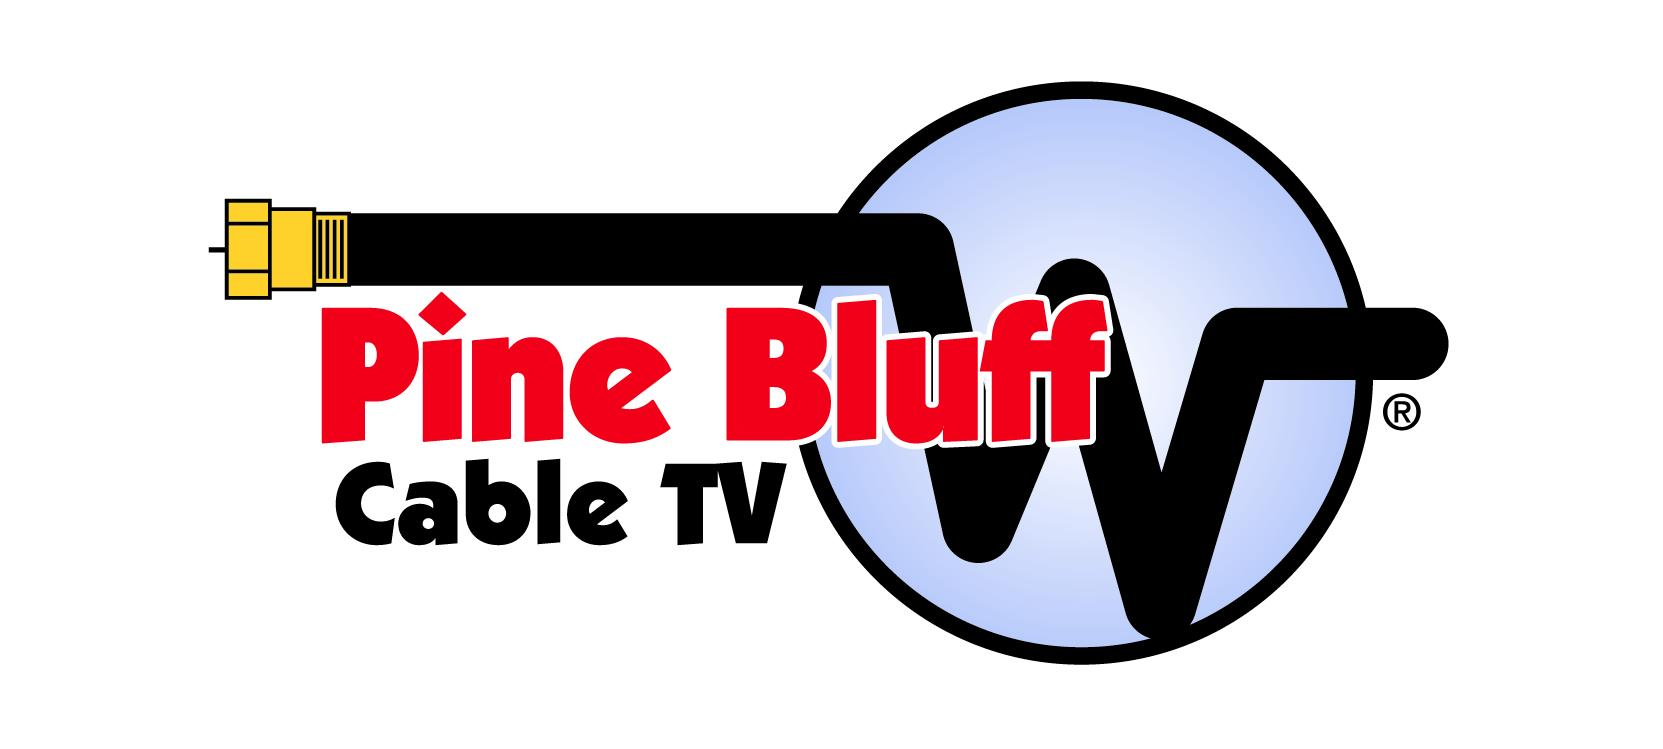 Pine Bluff Cable Tv Cable Broadband Provider Pine